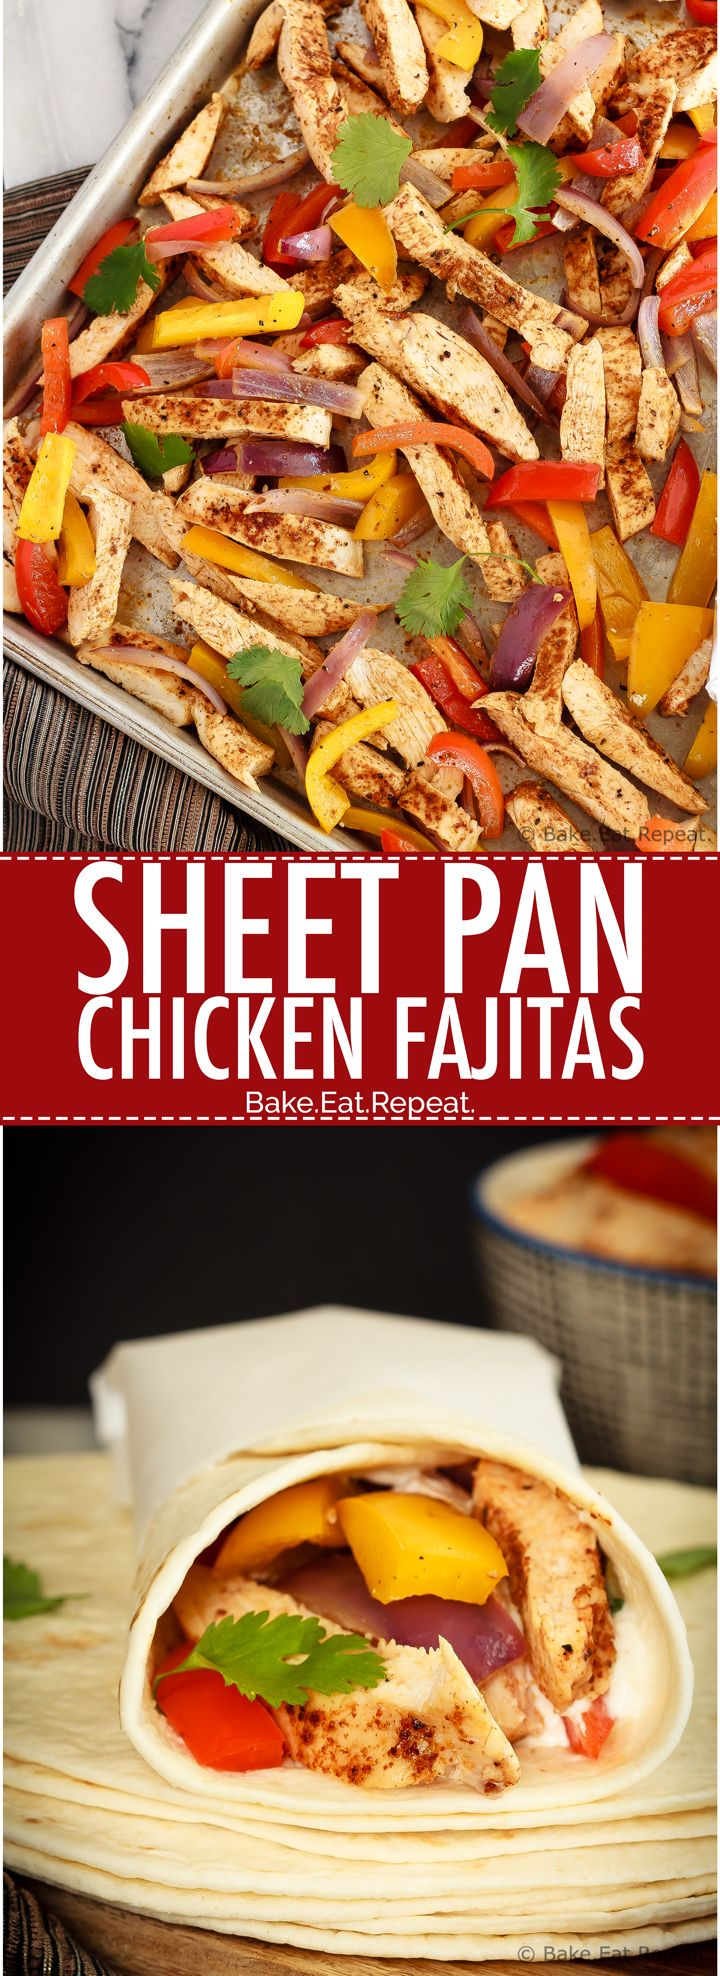 Sheet Pan Chicken Fajitas - Quick and easy chicken fajitas with just one sheet pan to clean afterwards!  This is my new favourite way to make one of my family's favourite meals!